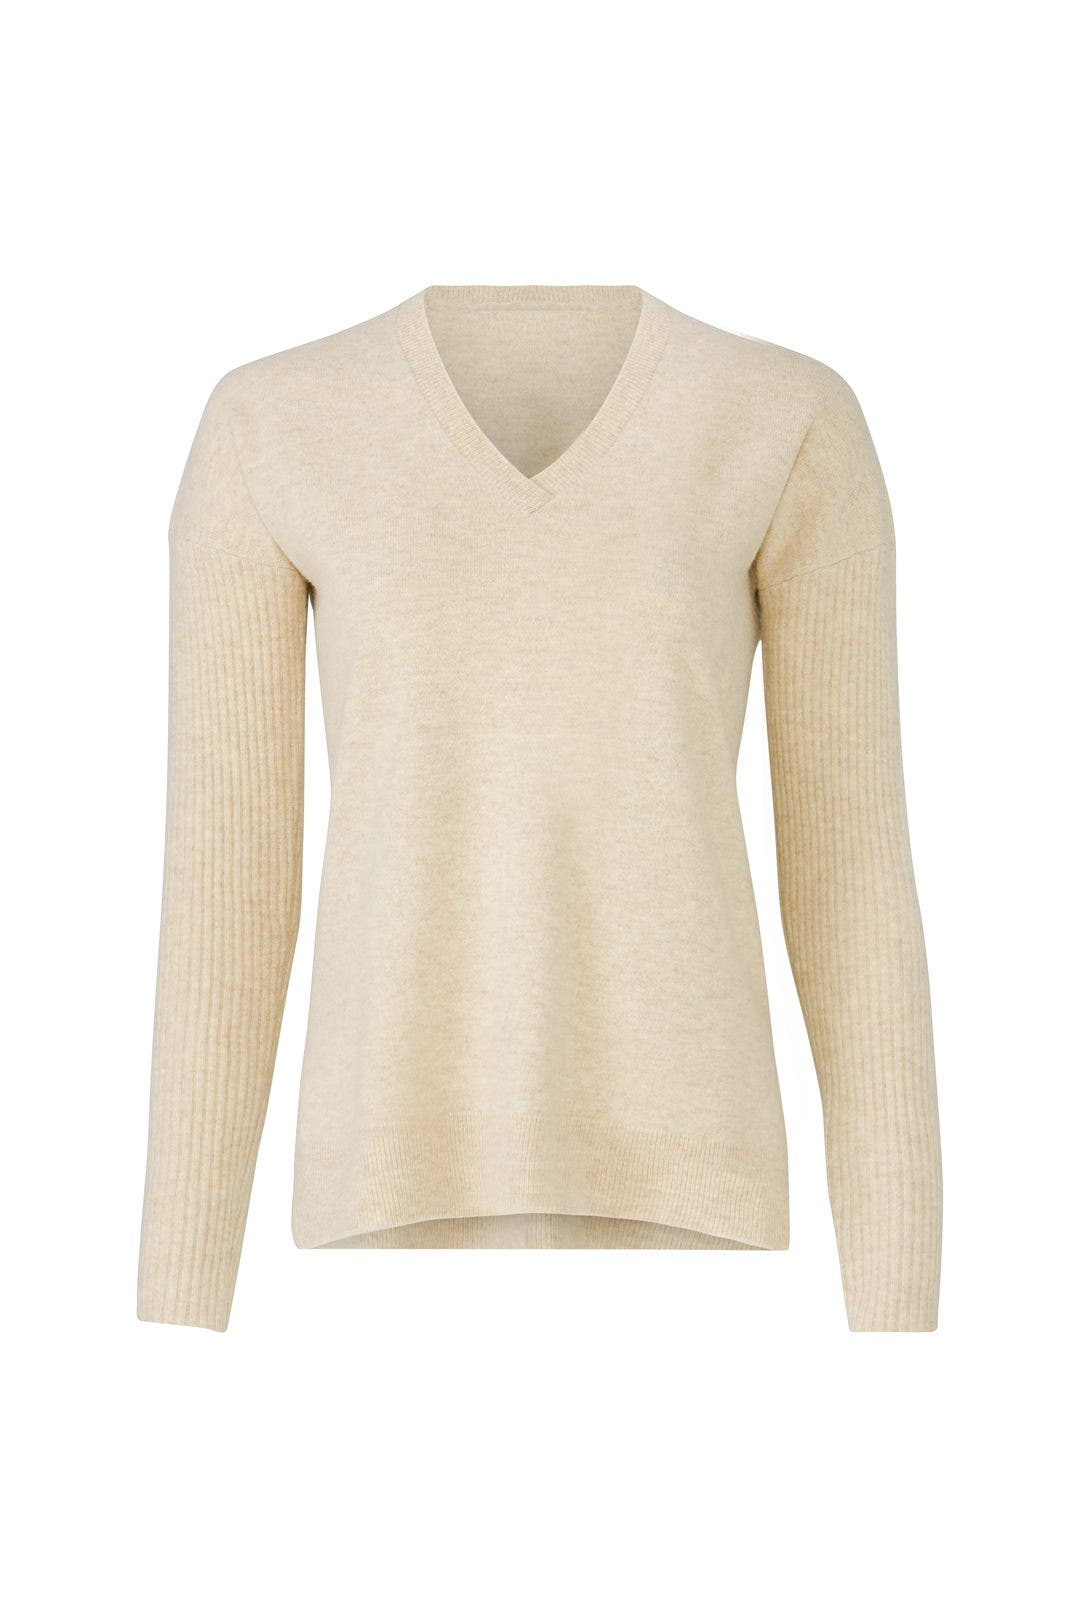 Cream Boyfriend Sweater by BROWN ALLAN for $30 | Rent the Runway